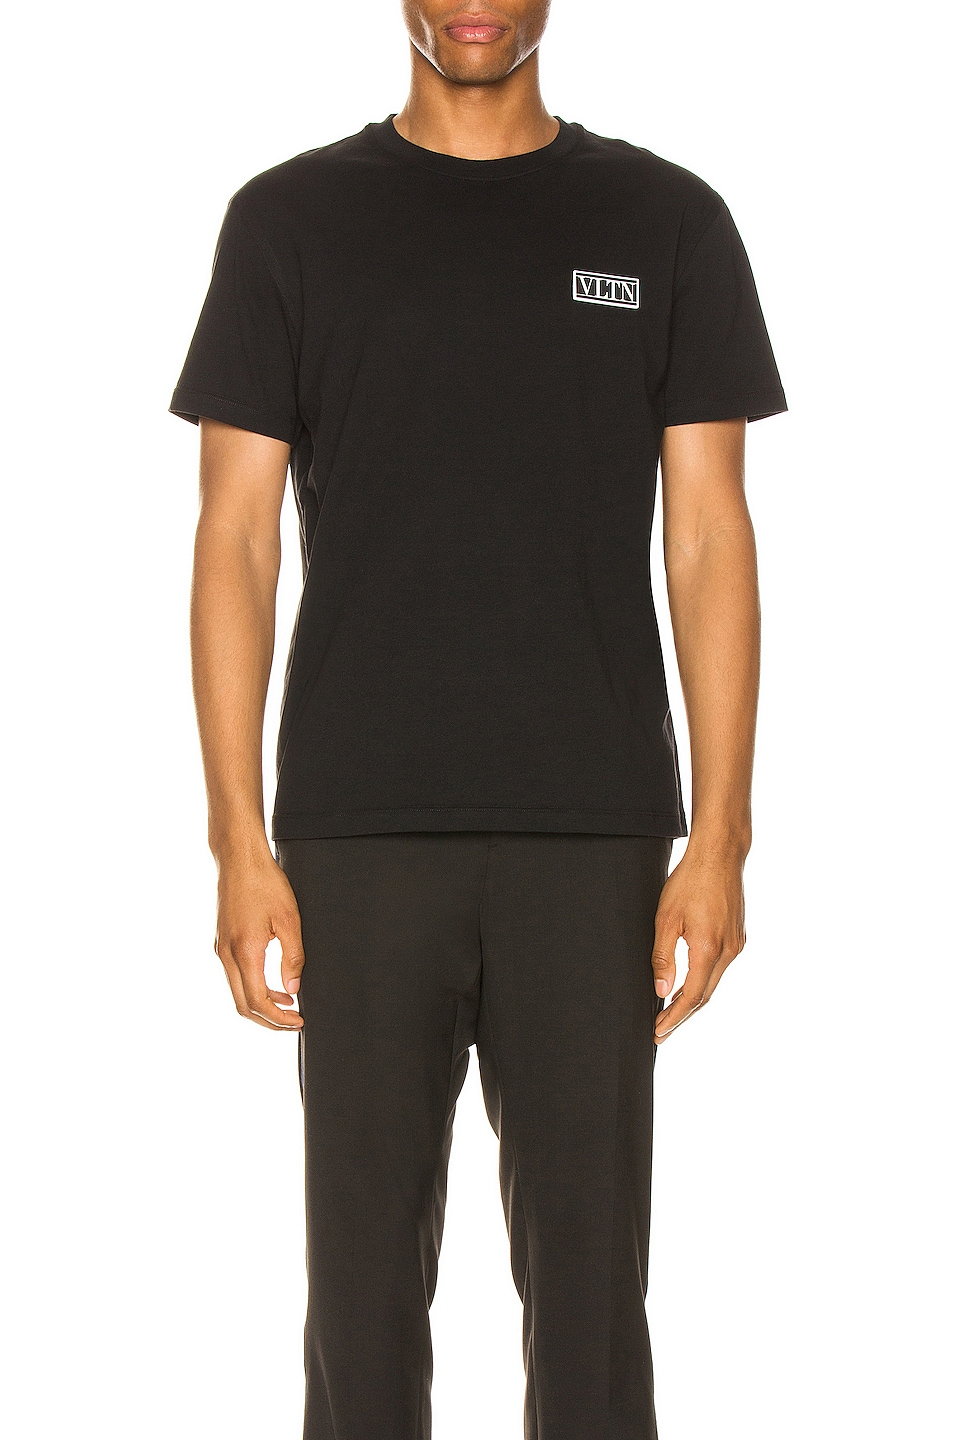 Image 1 of Valentino Garavani VLTN Tee in Black